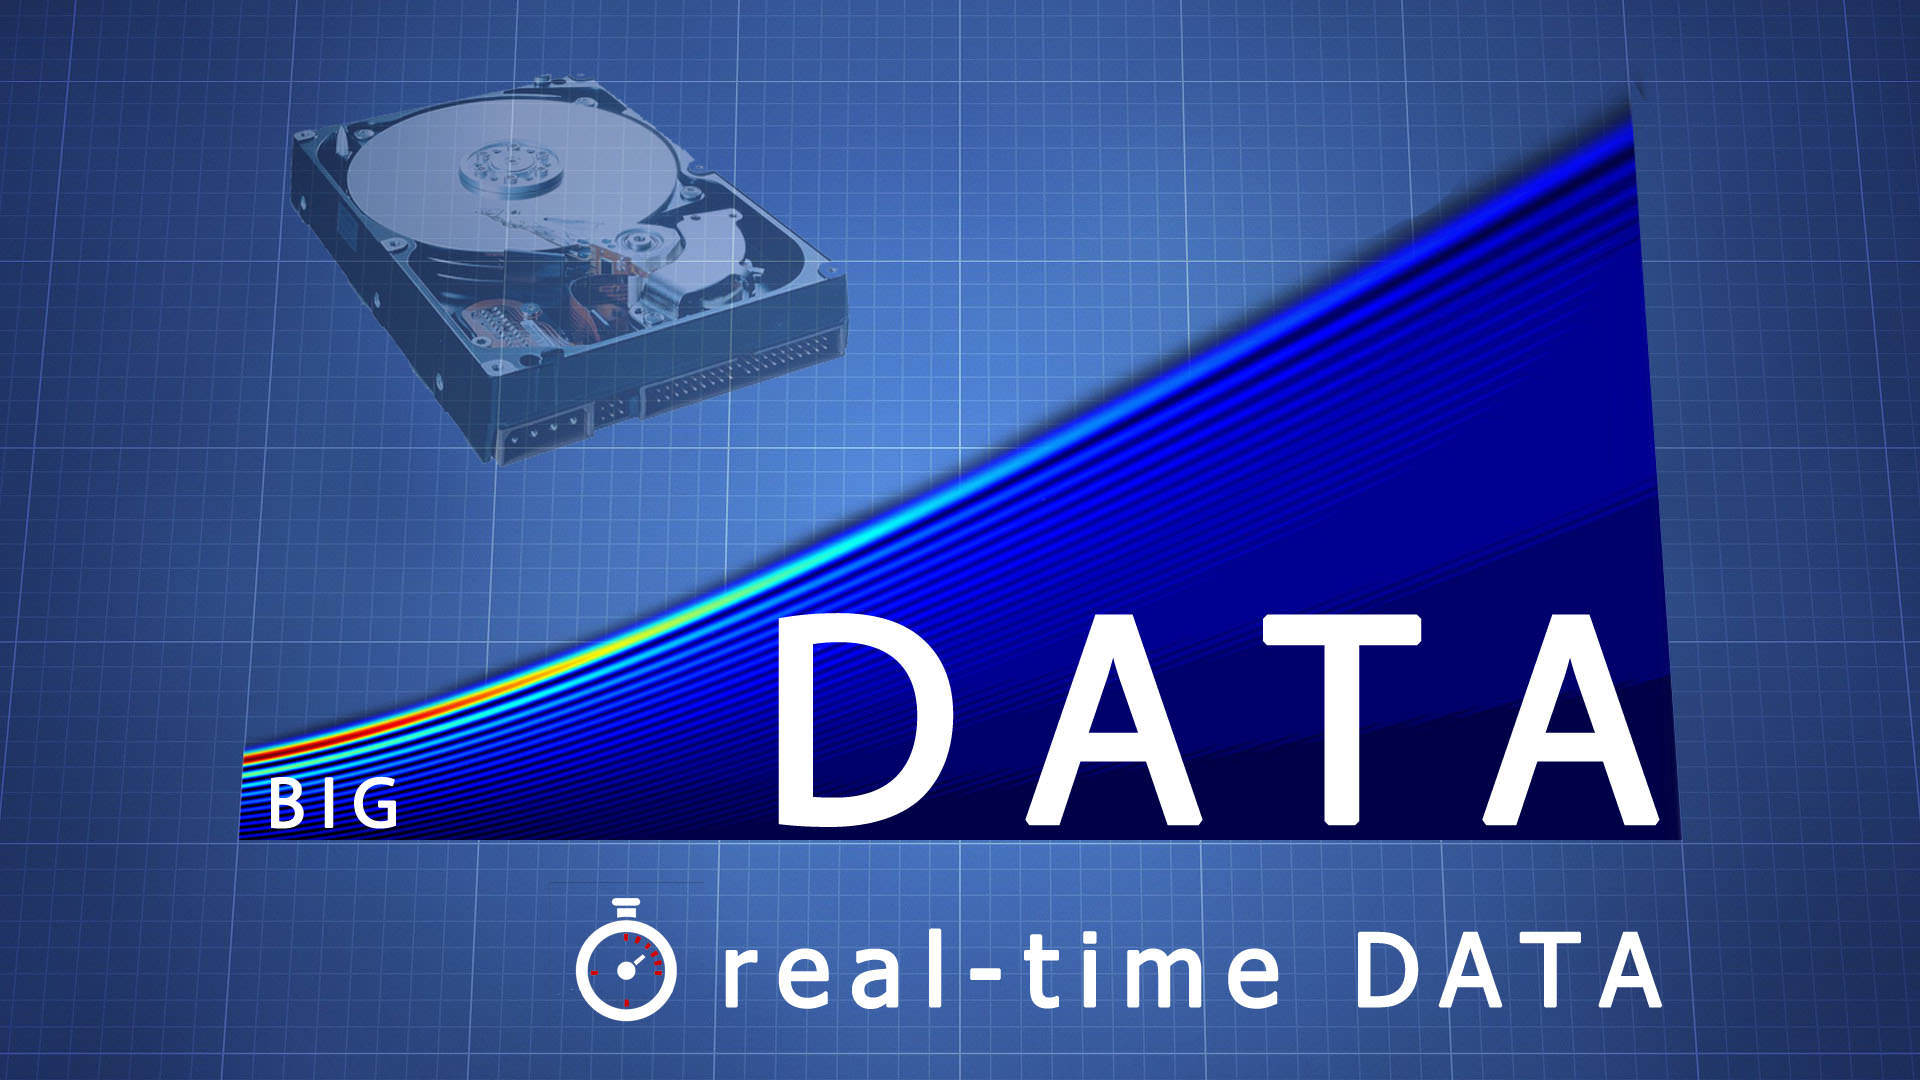 Big Data is OUT, Real-time Data is IN